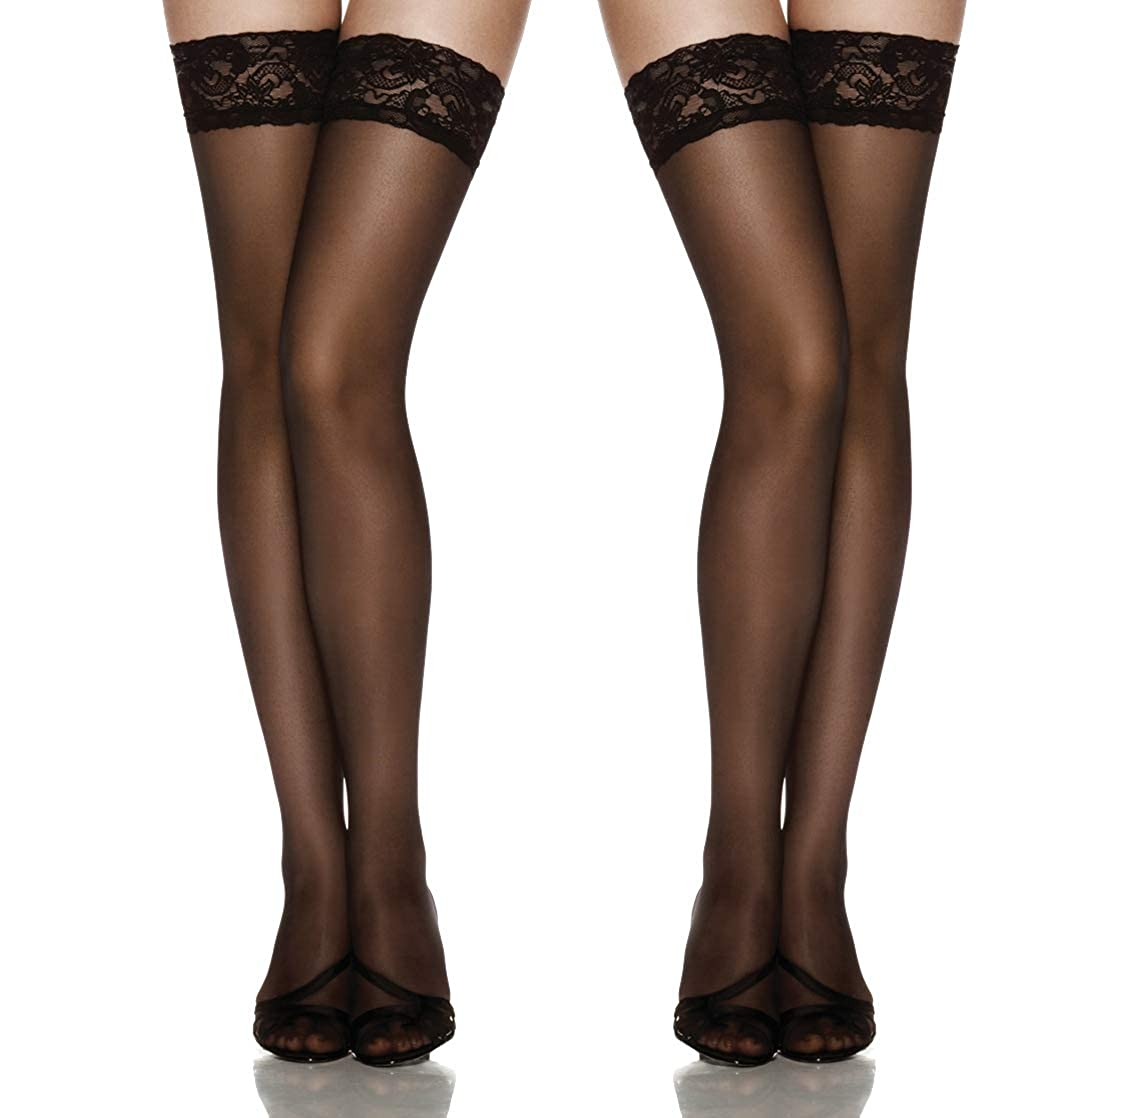 c2440e81b Thigh High Stockings Silicone Stay Up Tights Lace Top Semi Sheer Pantyhose  Update Size at Amazon Women s Clothing store